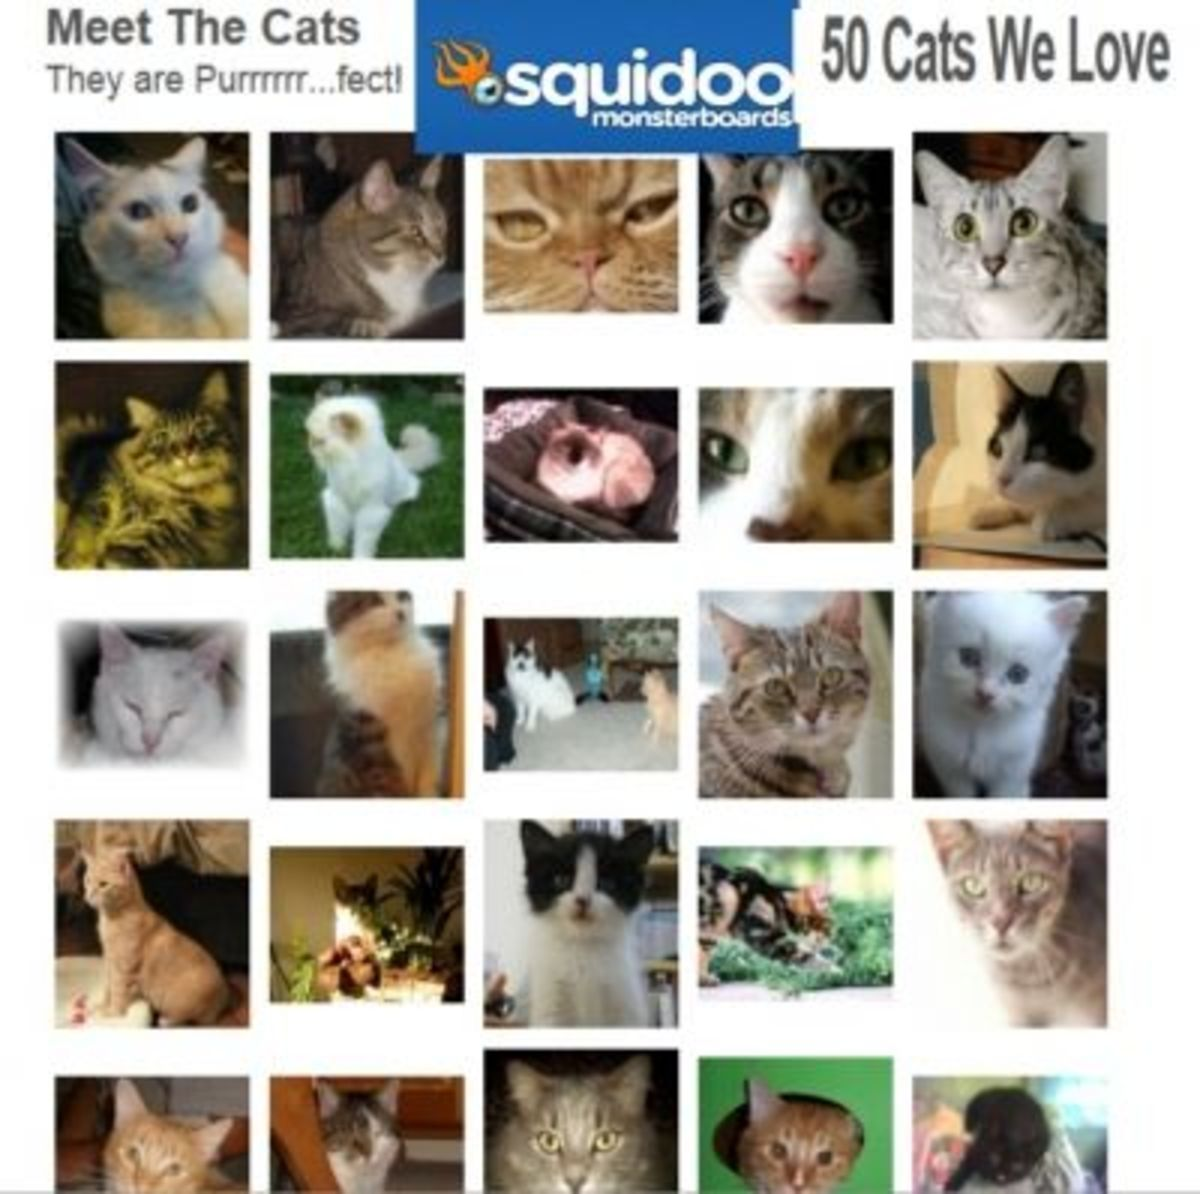 Sully was featured in the 50 Cats we love Monsterboard (btm rt corner)